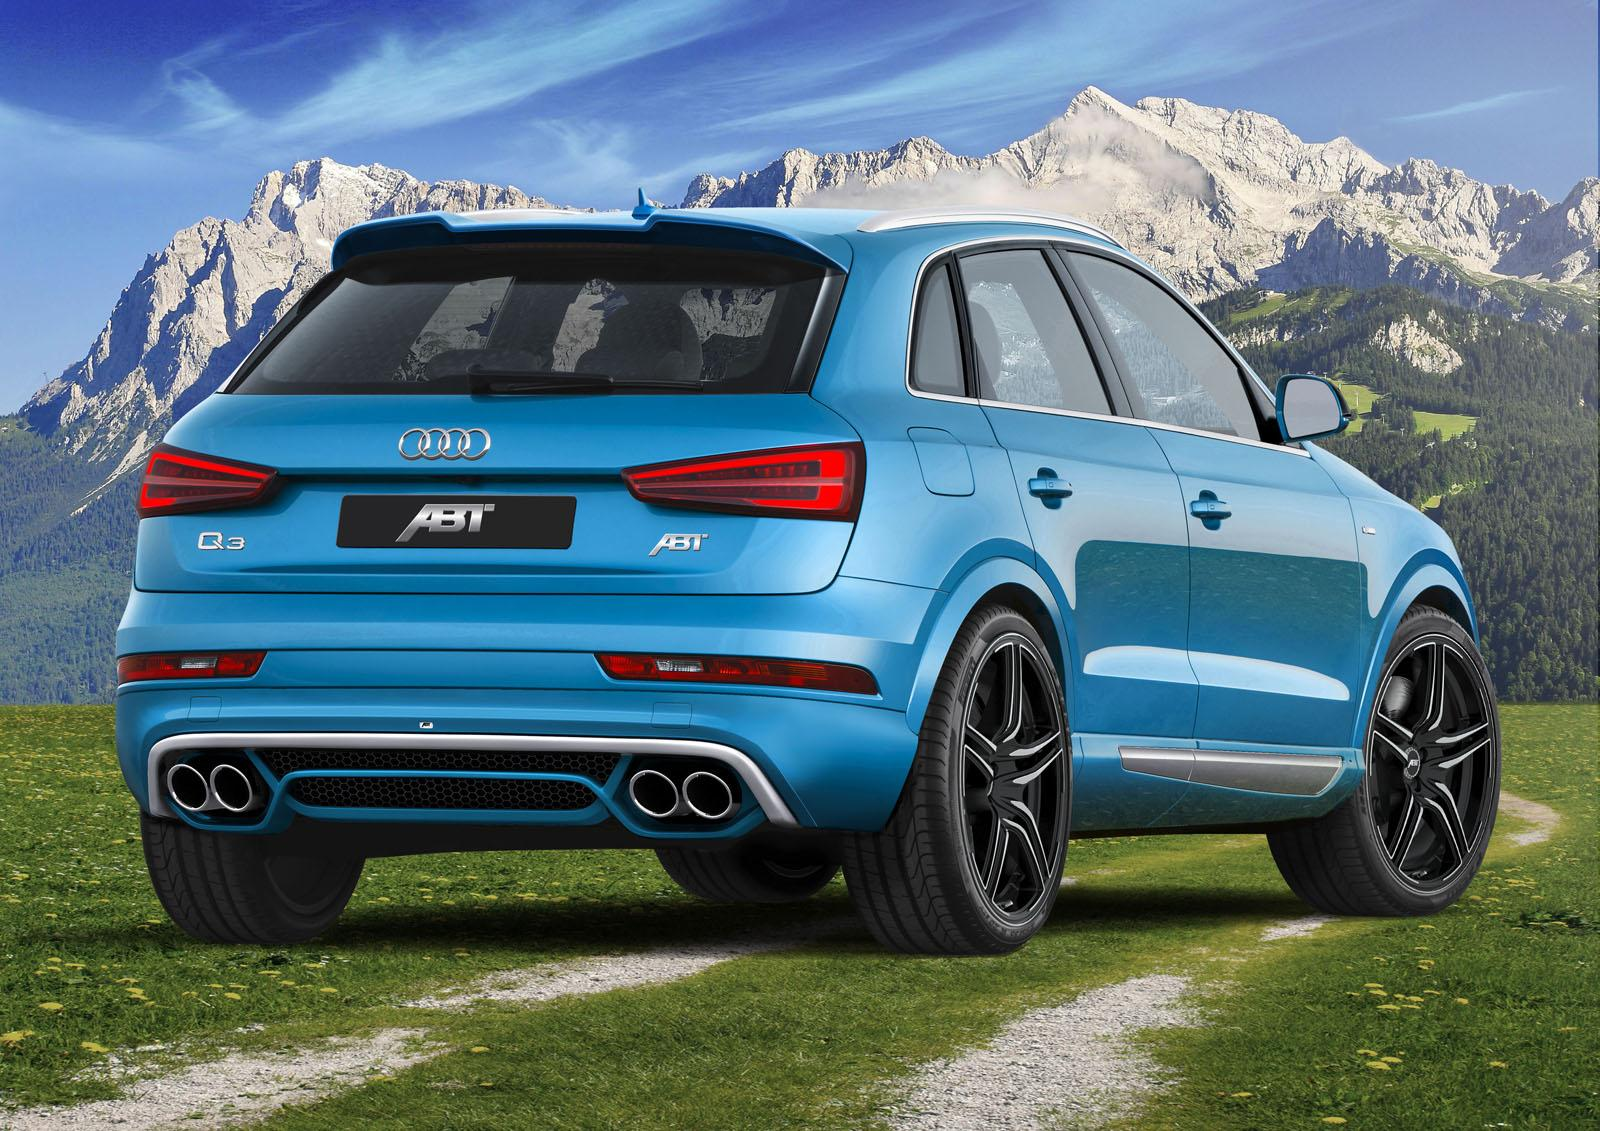 2015 Audi Q3 Getting 120 Hp Base Version In 2015 1 6 Tdi Or 2 0 Tdi